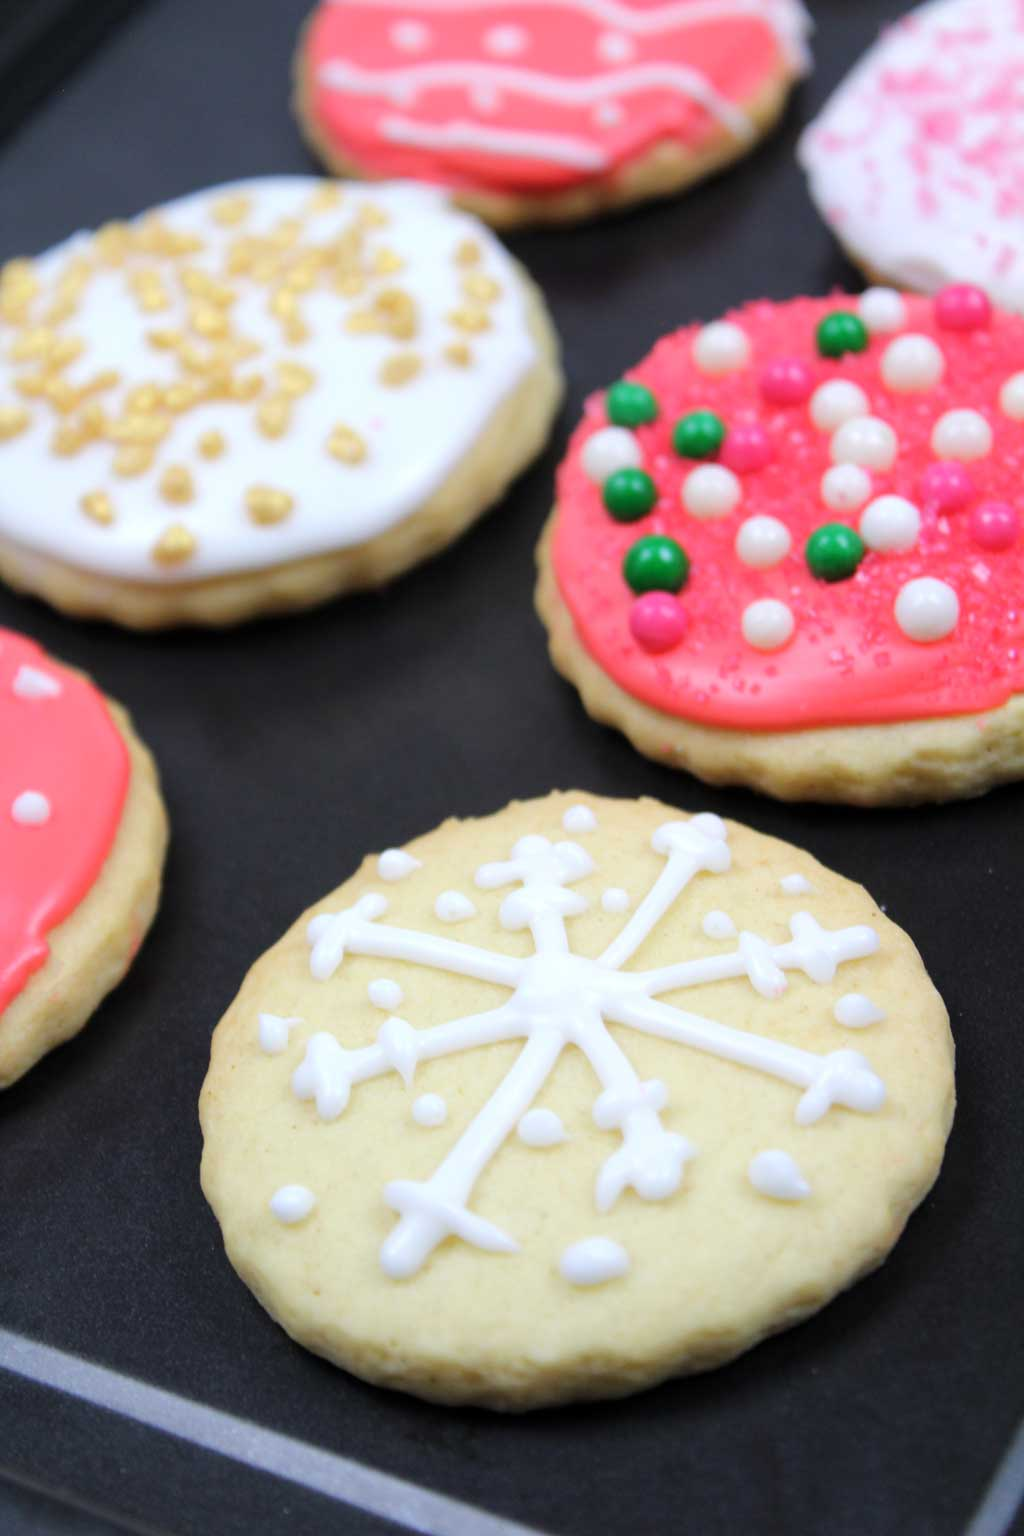 a batch of cookies on a tray with royal icing and sprinkles on top